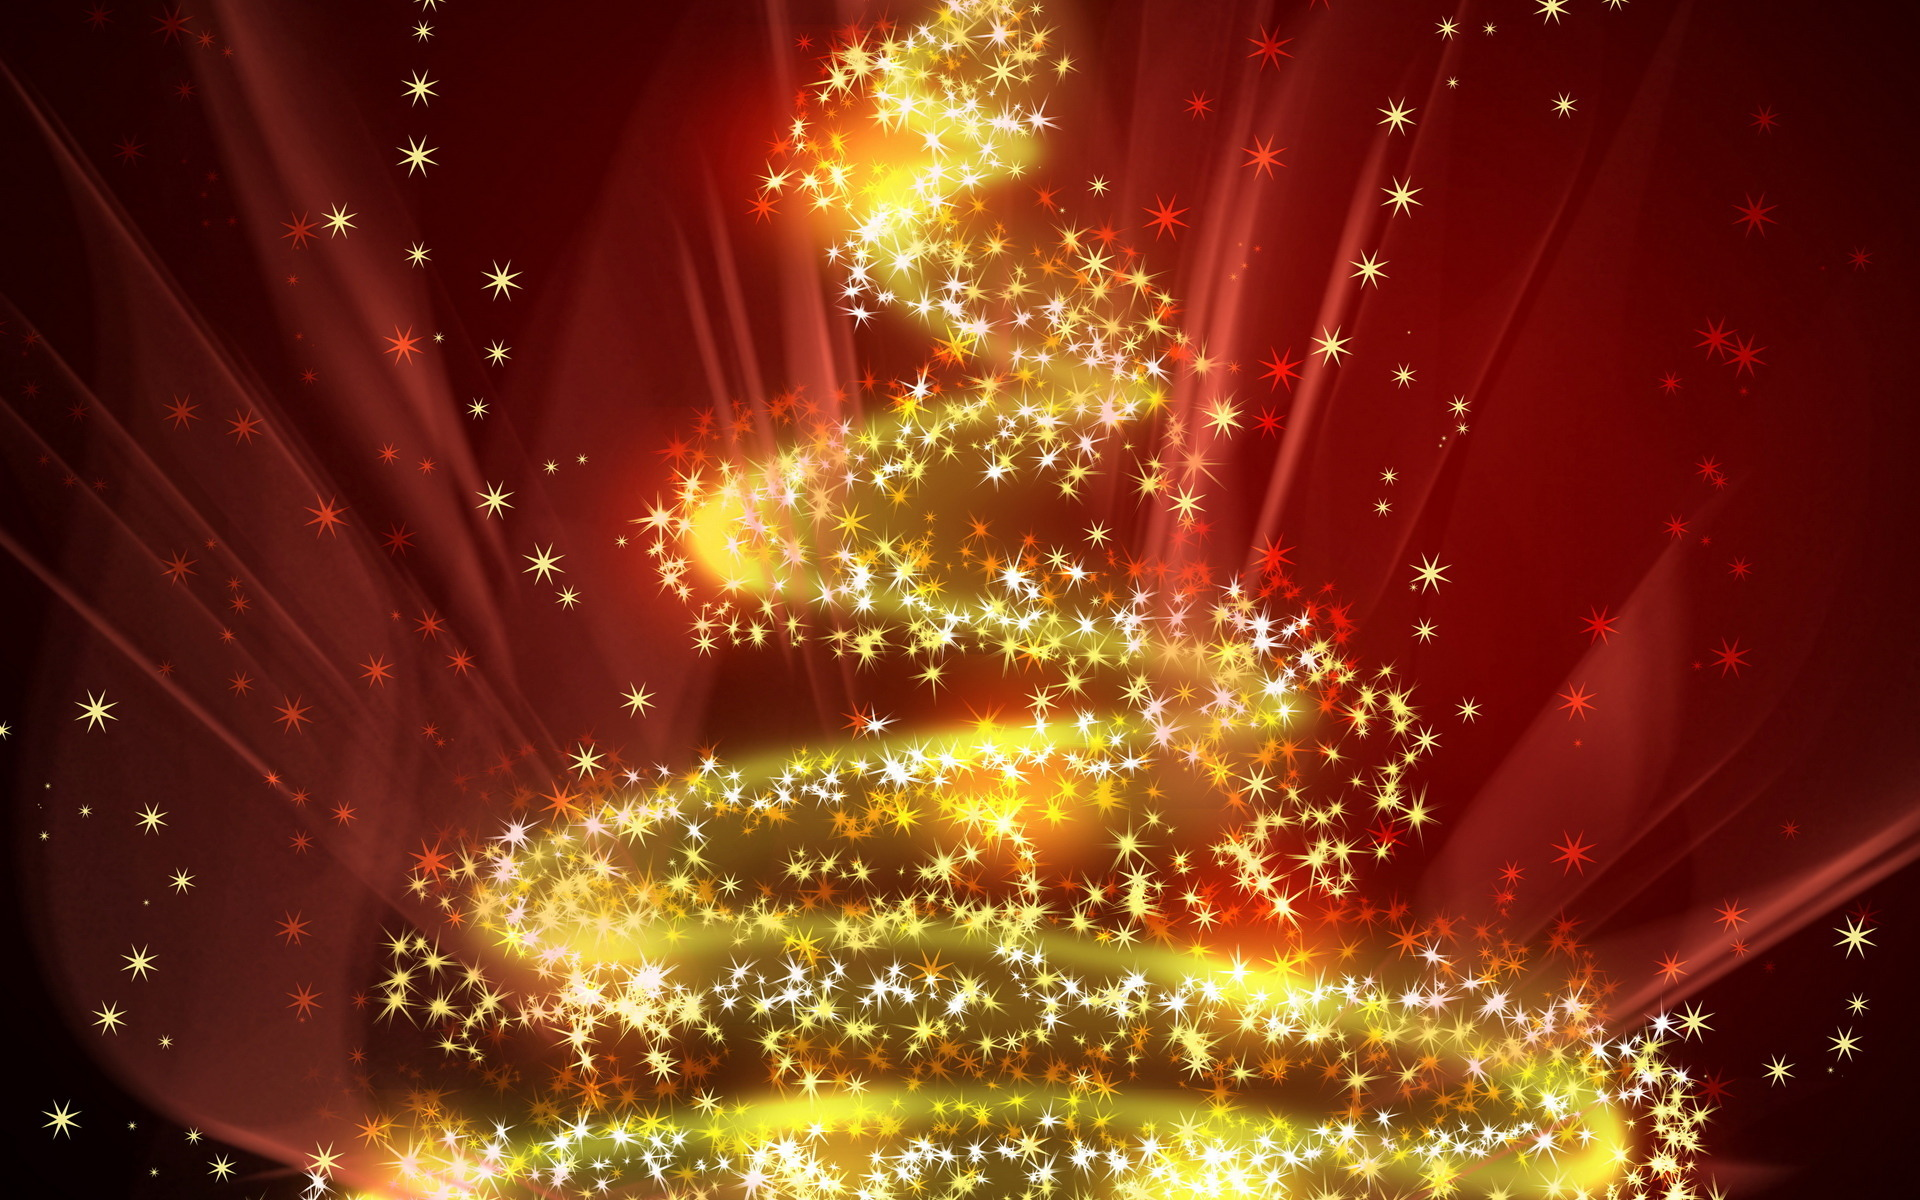 New Year, Christmas texture, Christmas and New Year tree texture background